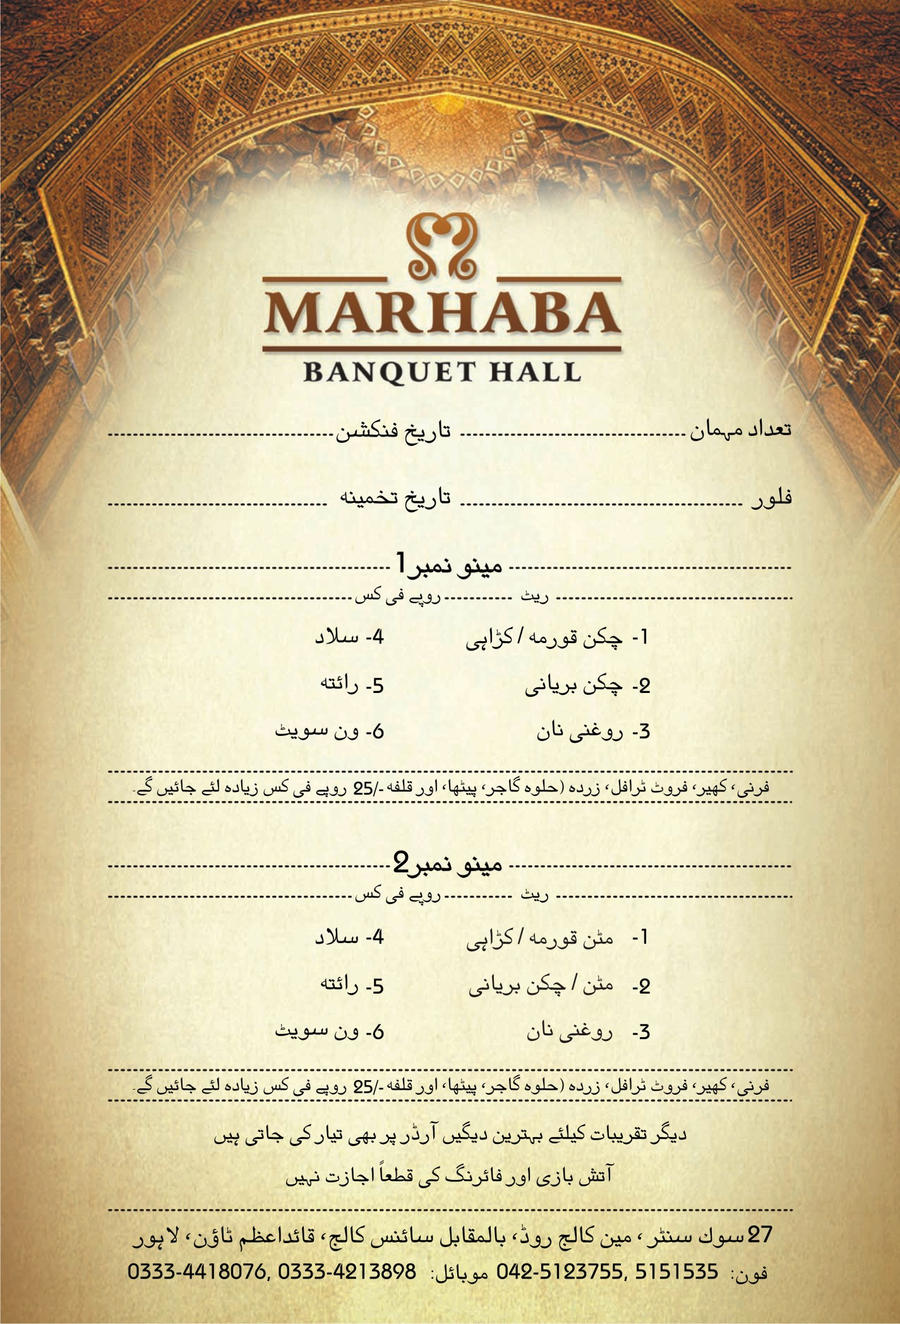 Marhaba banquet hall menu by aa3 on deviantart for Roman menu template